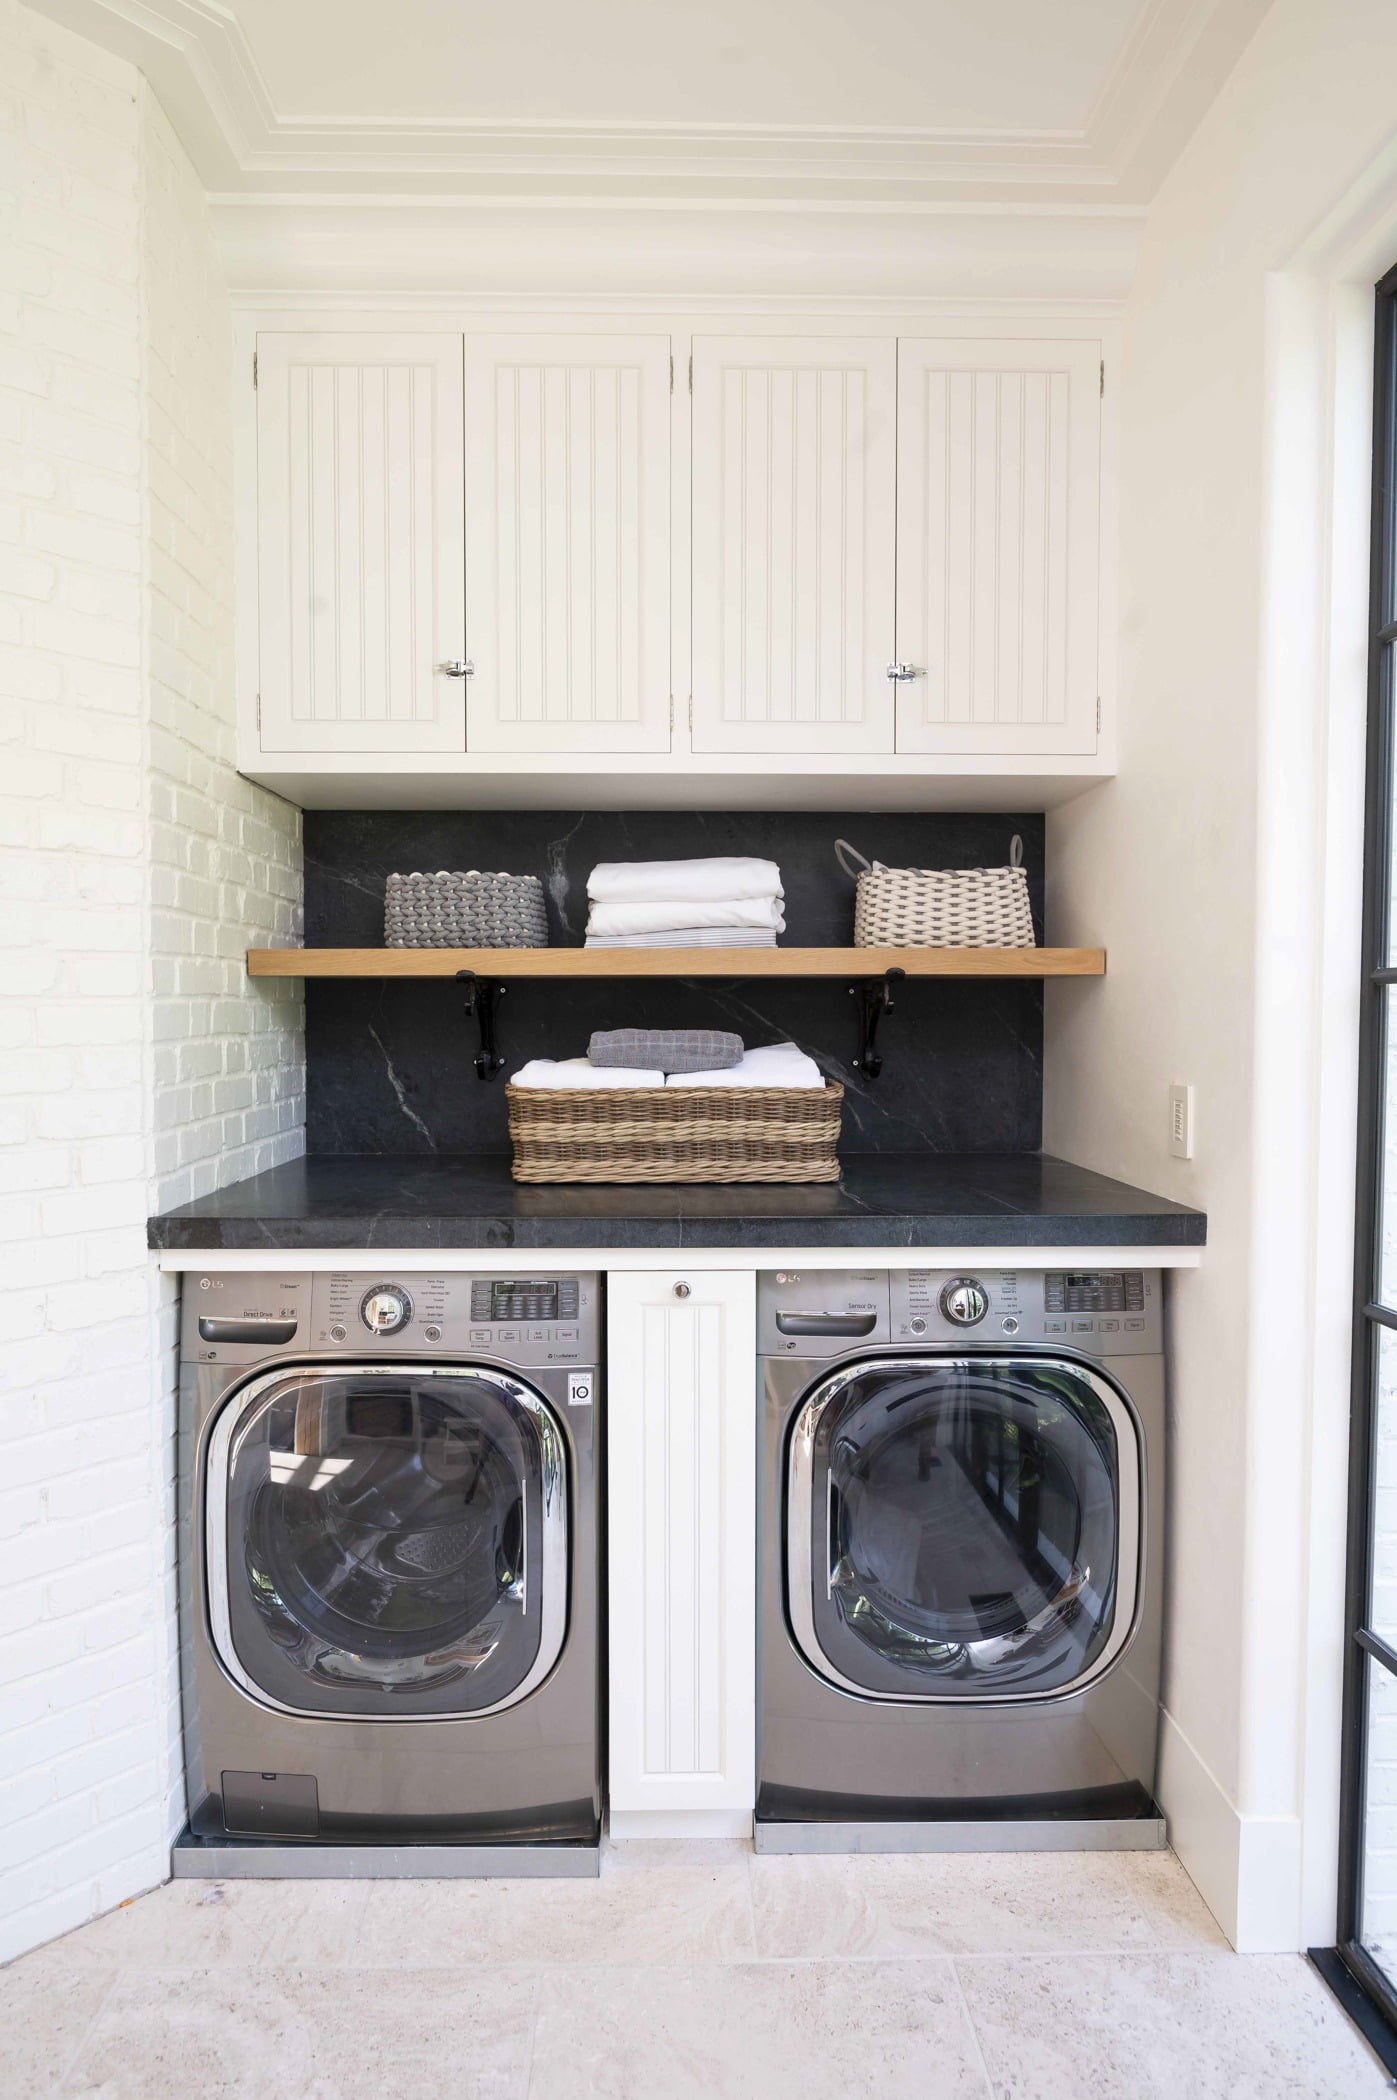 Coastal laundry room with white paneled cabinetry, dark granite countertops, and wooden shelving